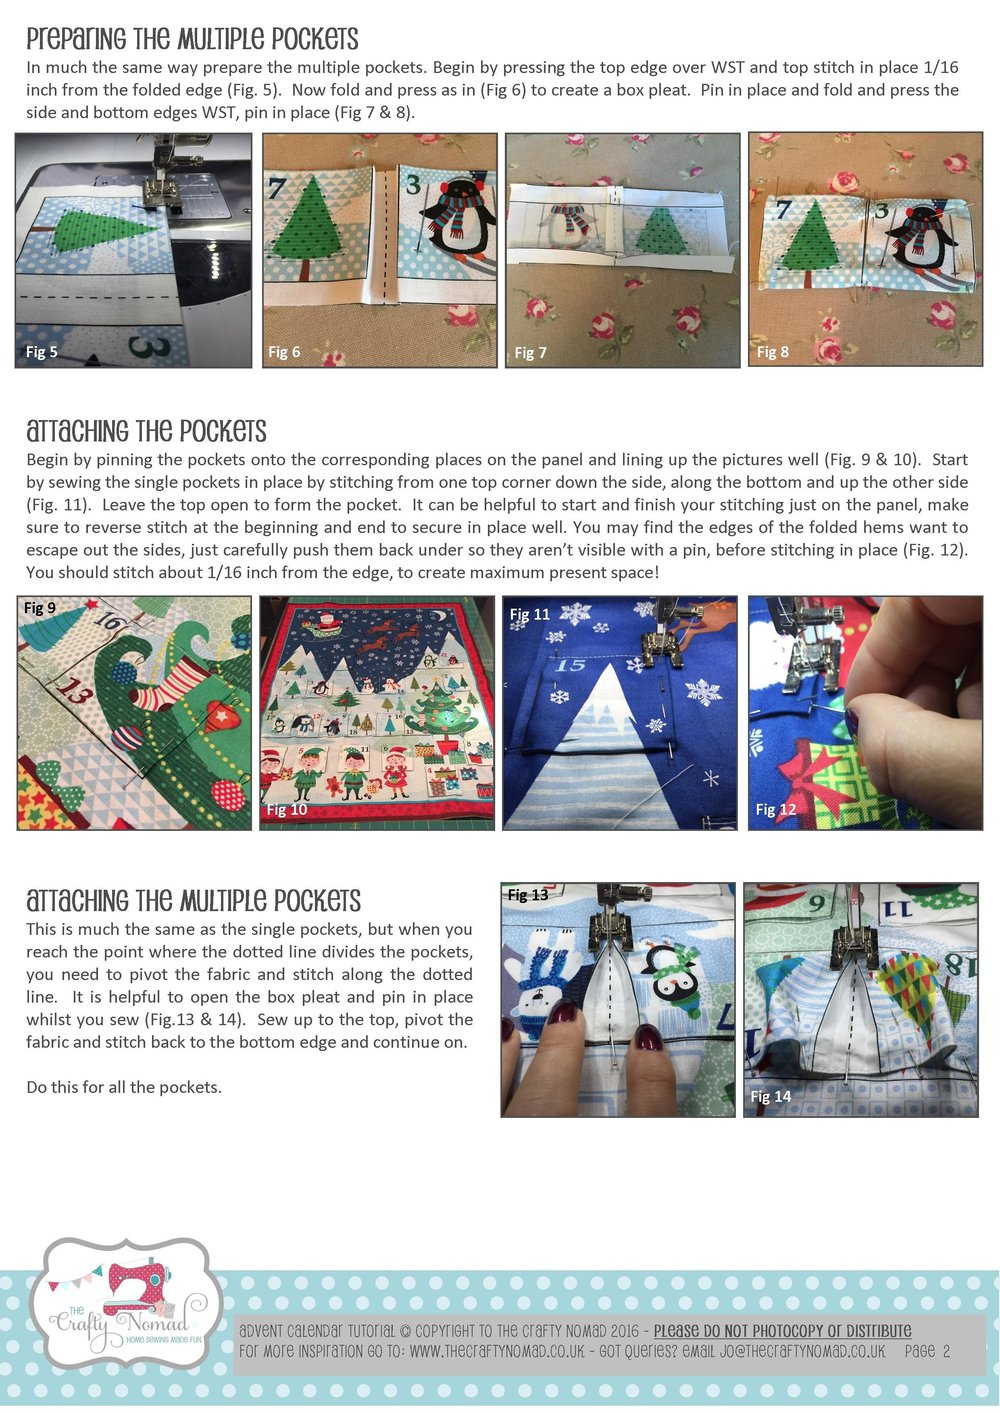 18 Advent Panel Tutorial Page 2 The Crafty Nomad.jpg